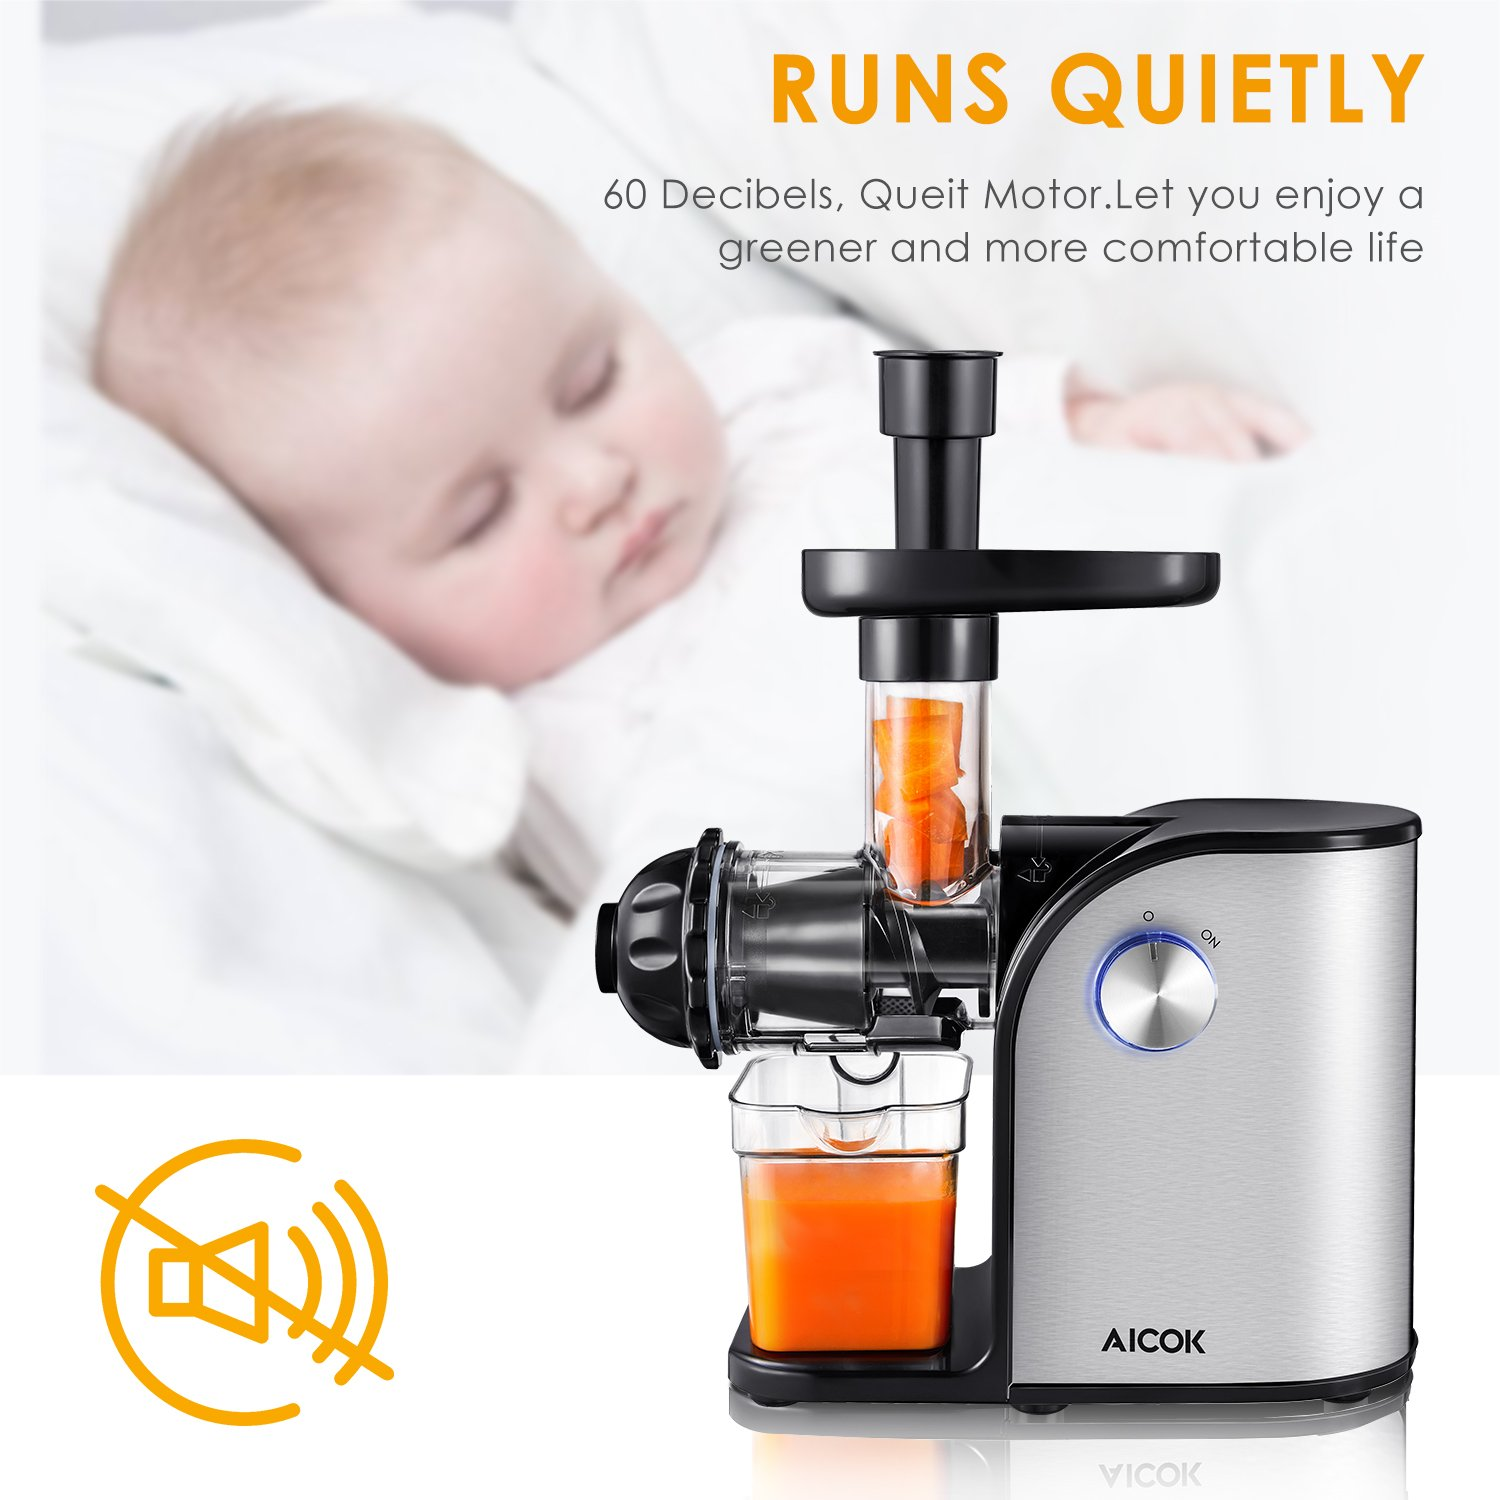 Aicok Slow Masticating juicer, Cold Press Juice Extractor, Stainless Steel, Quiet Motor, High Nutrient Fruit and Vegetable Juice, Black by AICOK (Image #4)